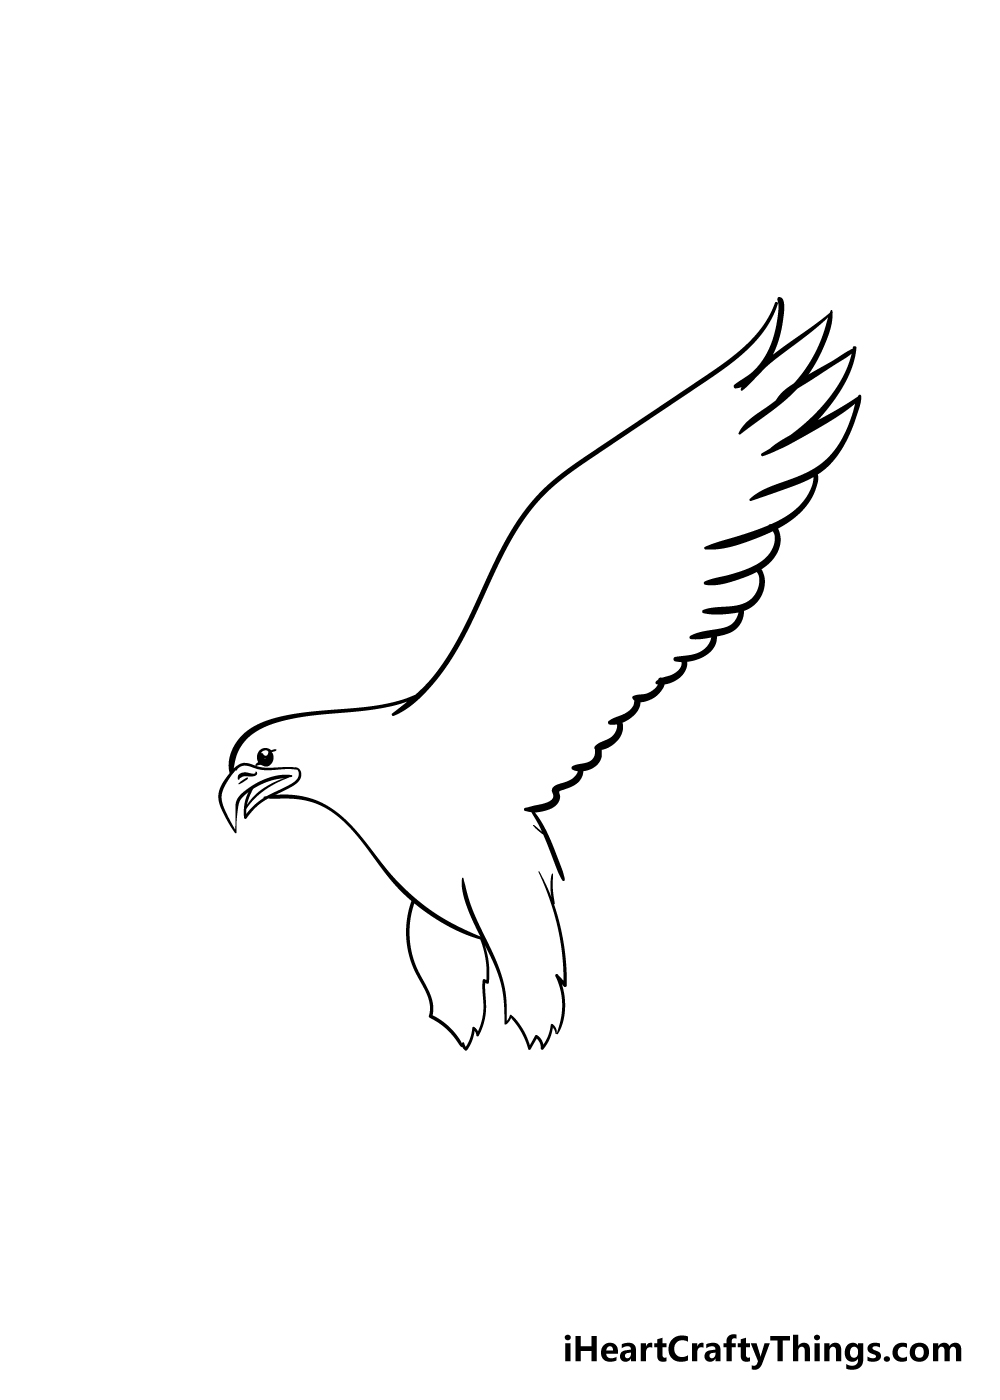 eagle drawing step 3